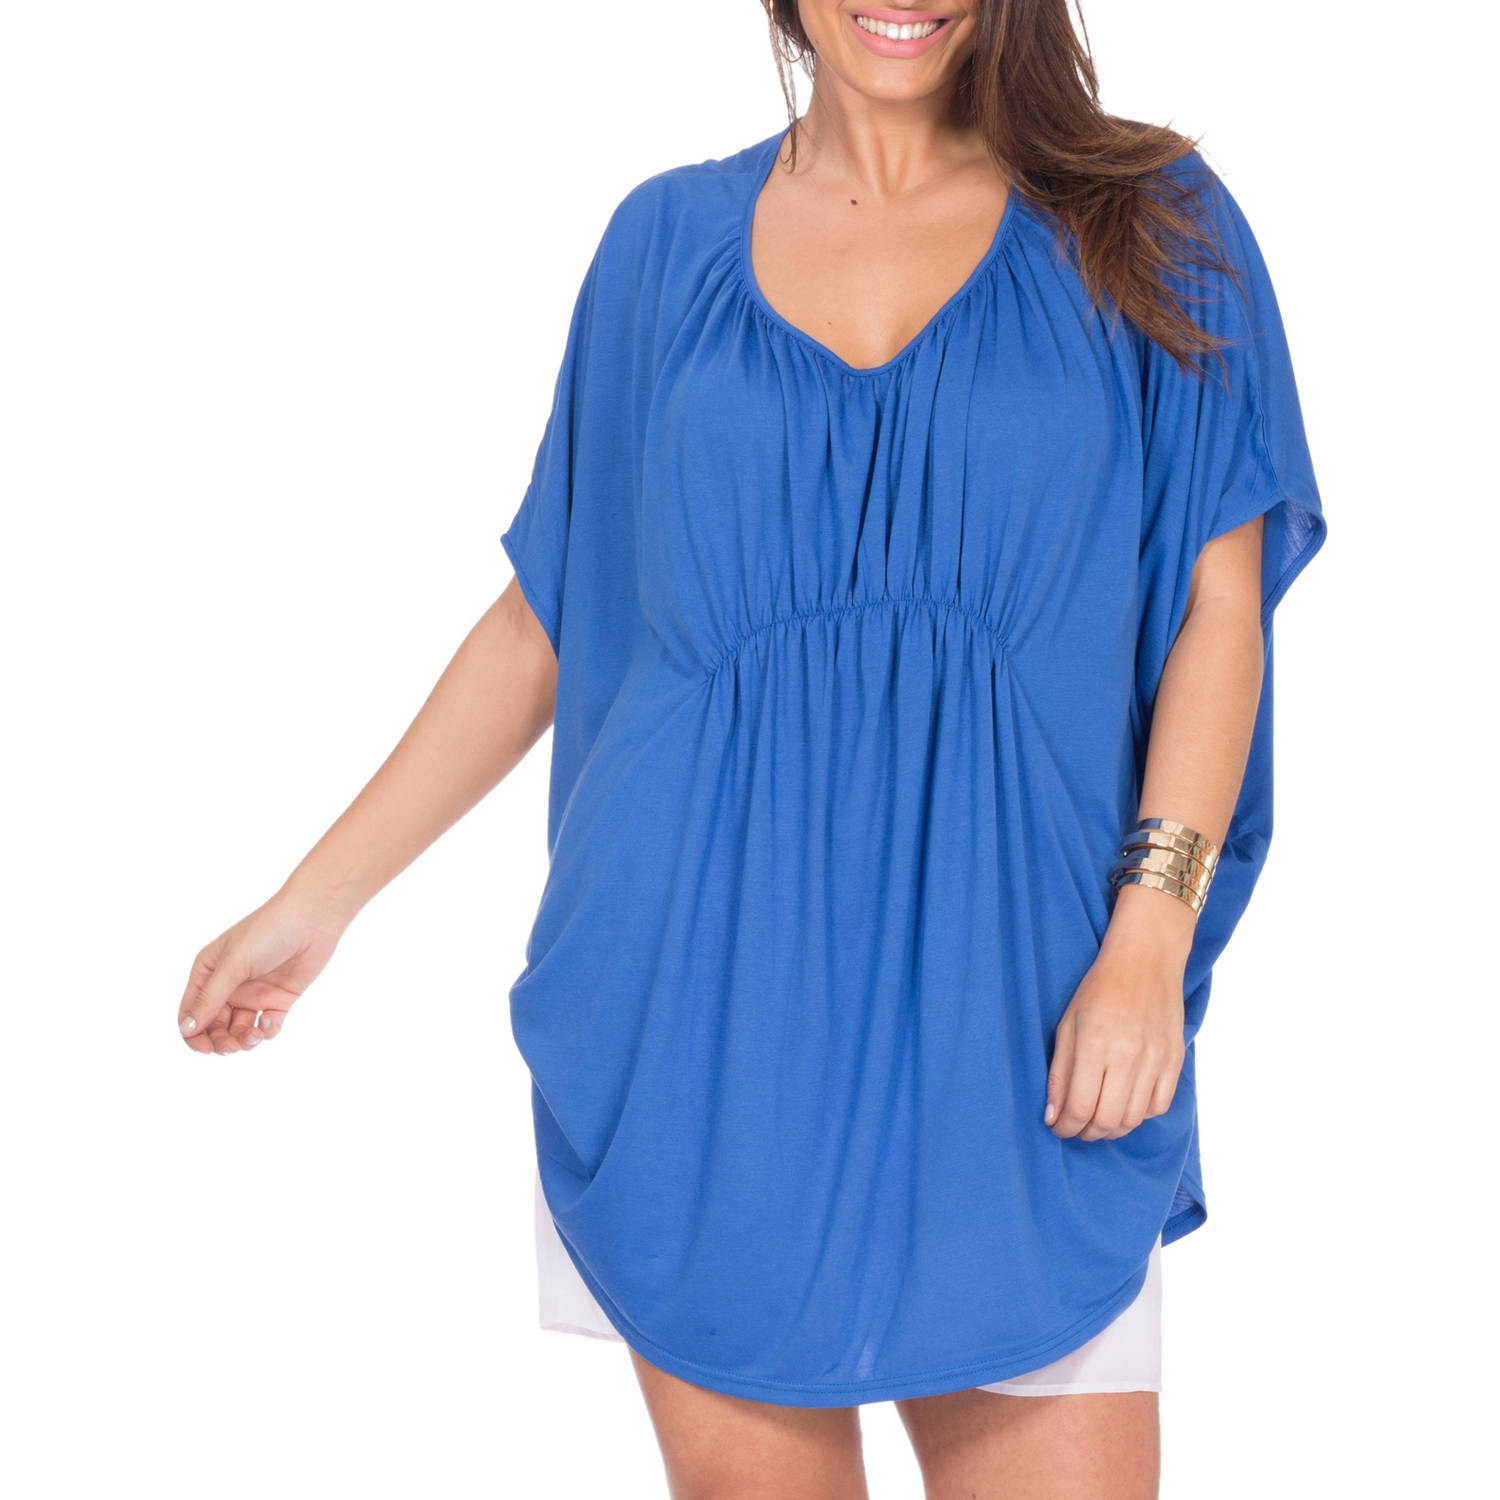 Plus Moda Women's Plus Size Kaftan Top